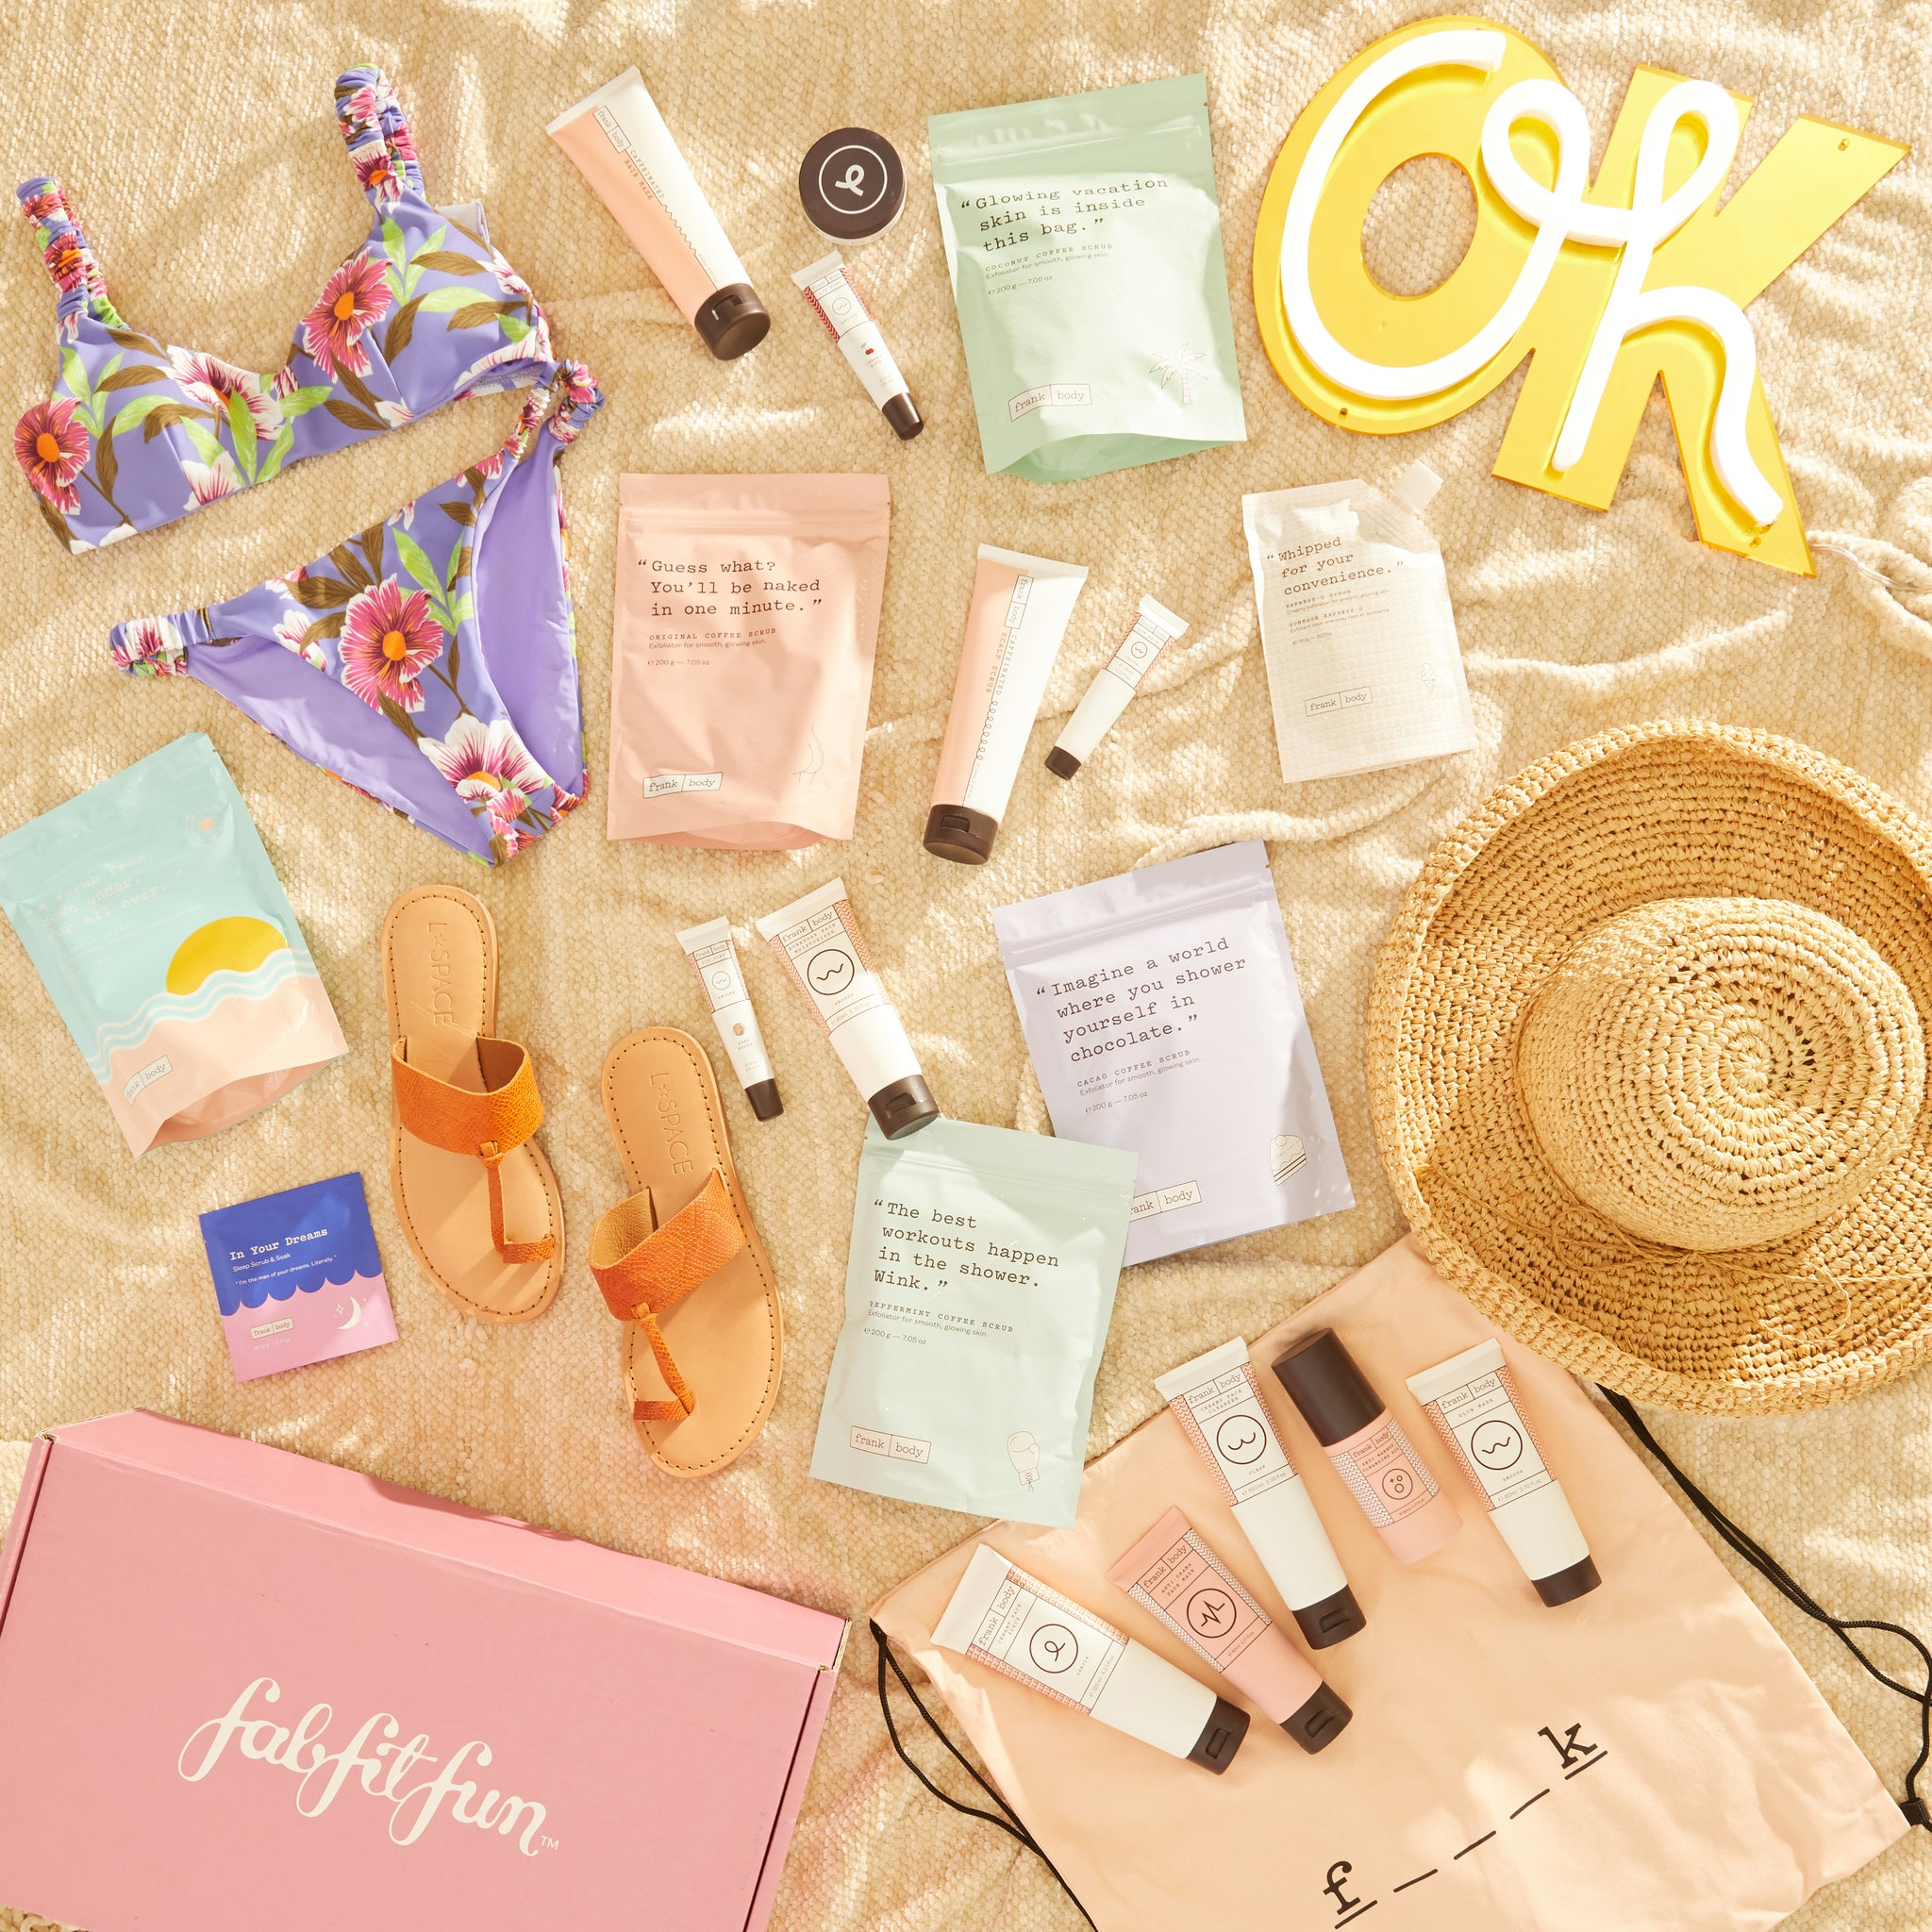 L*Space x FabFitFun Summertime Giveaway